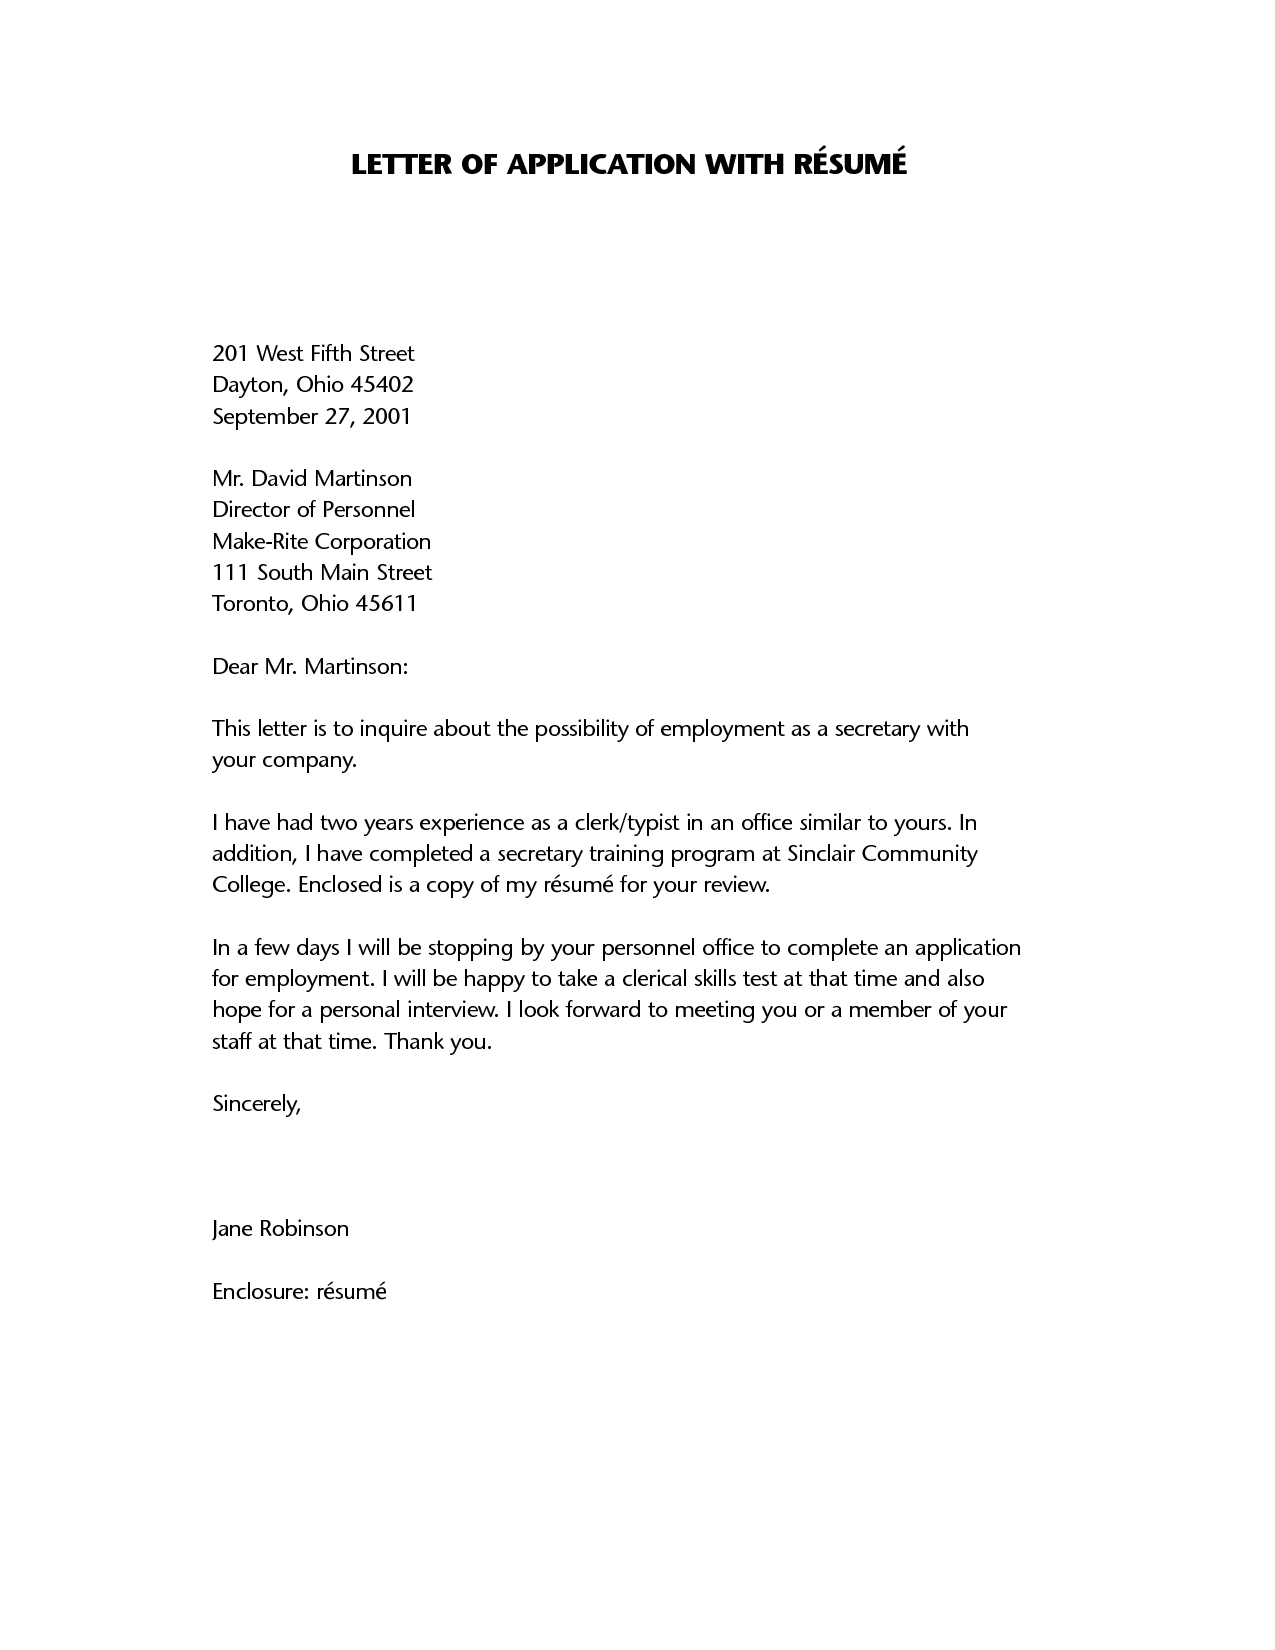 Application letter with resume selol ink application letter with resume thecheapjerseys Images